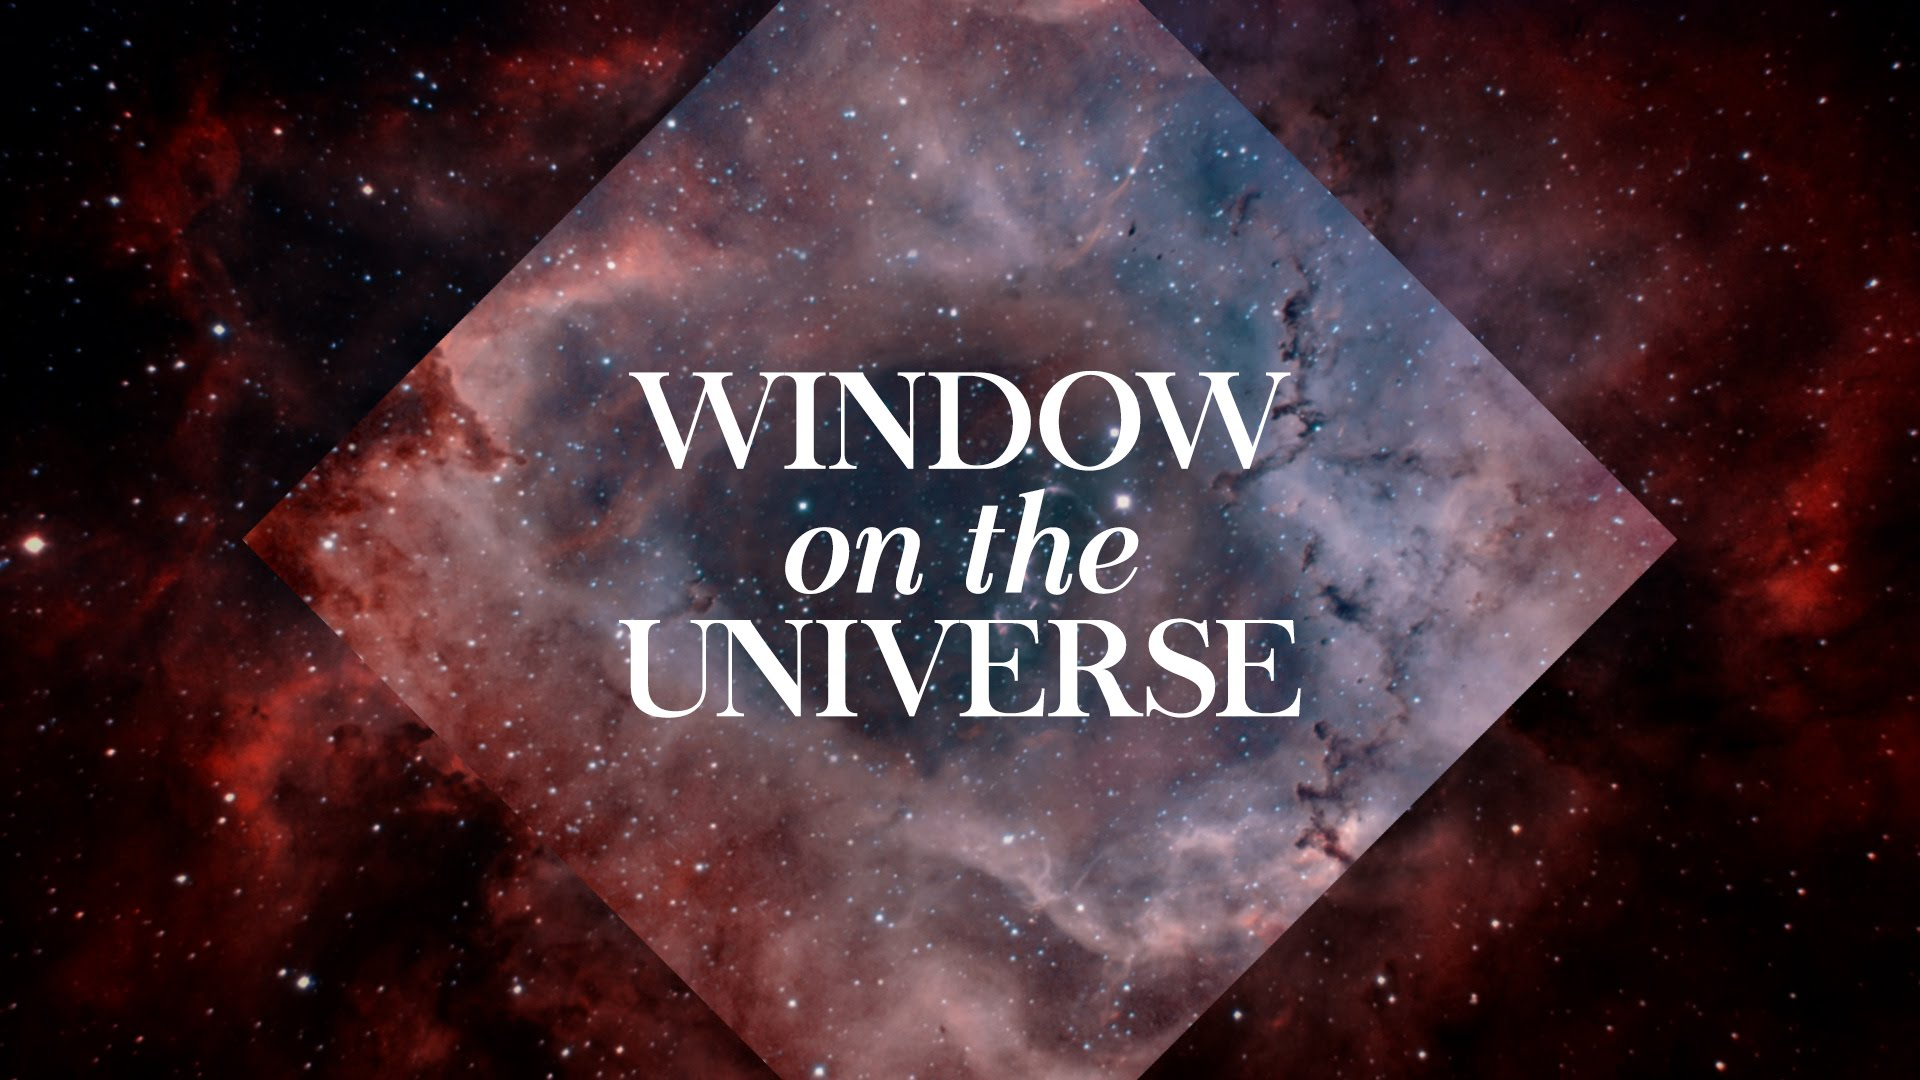 'Window on the Universe', A Musical Tribute to the Hubble Space Telescope to Celebrate Its 25th Anniversary